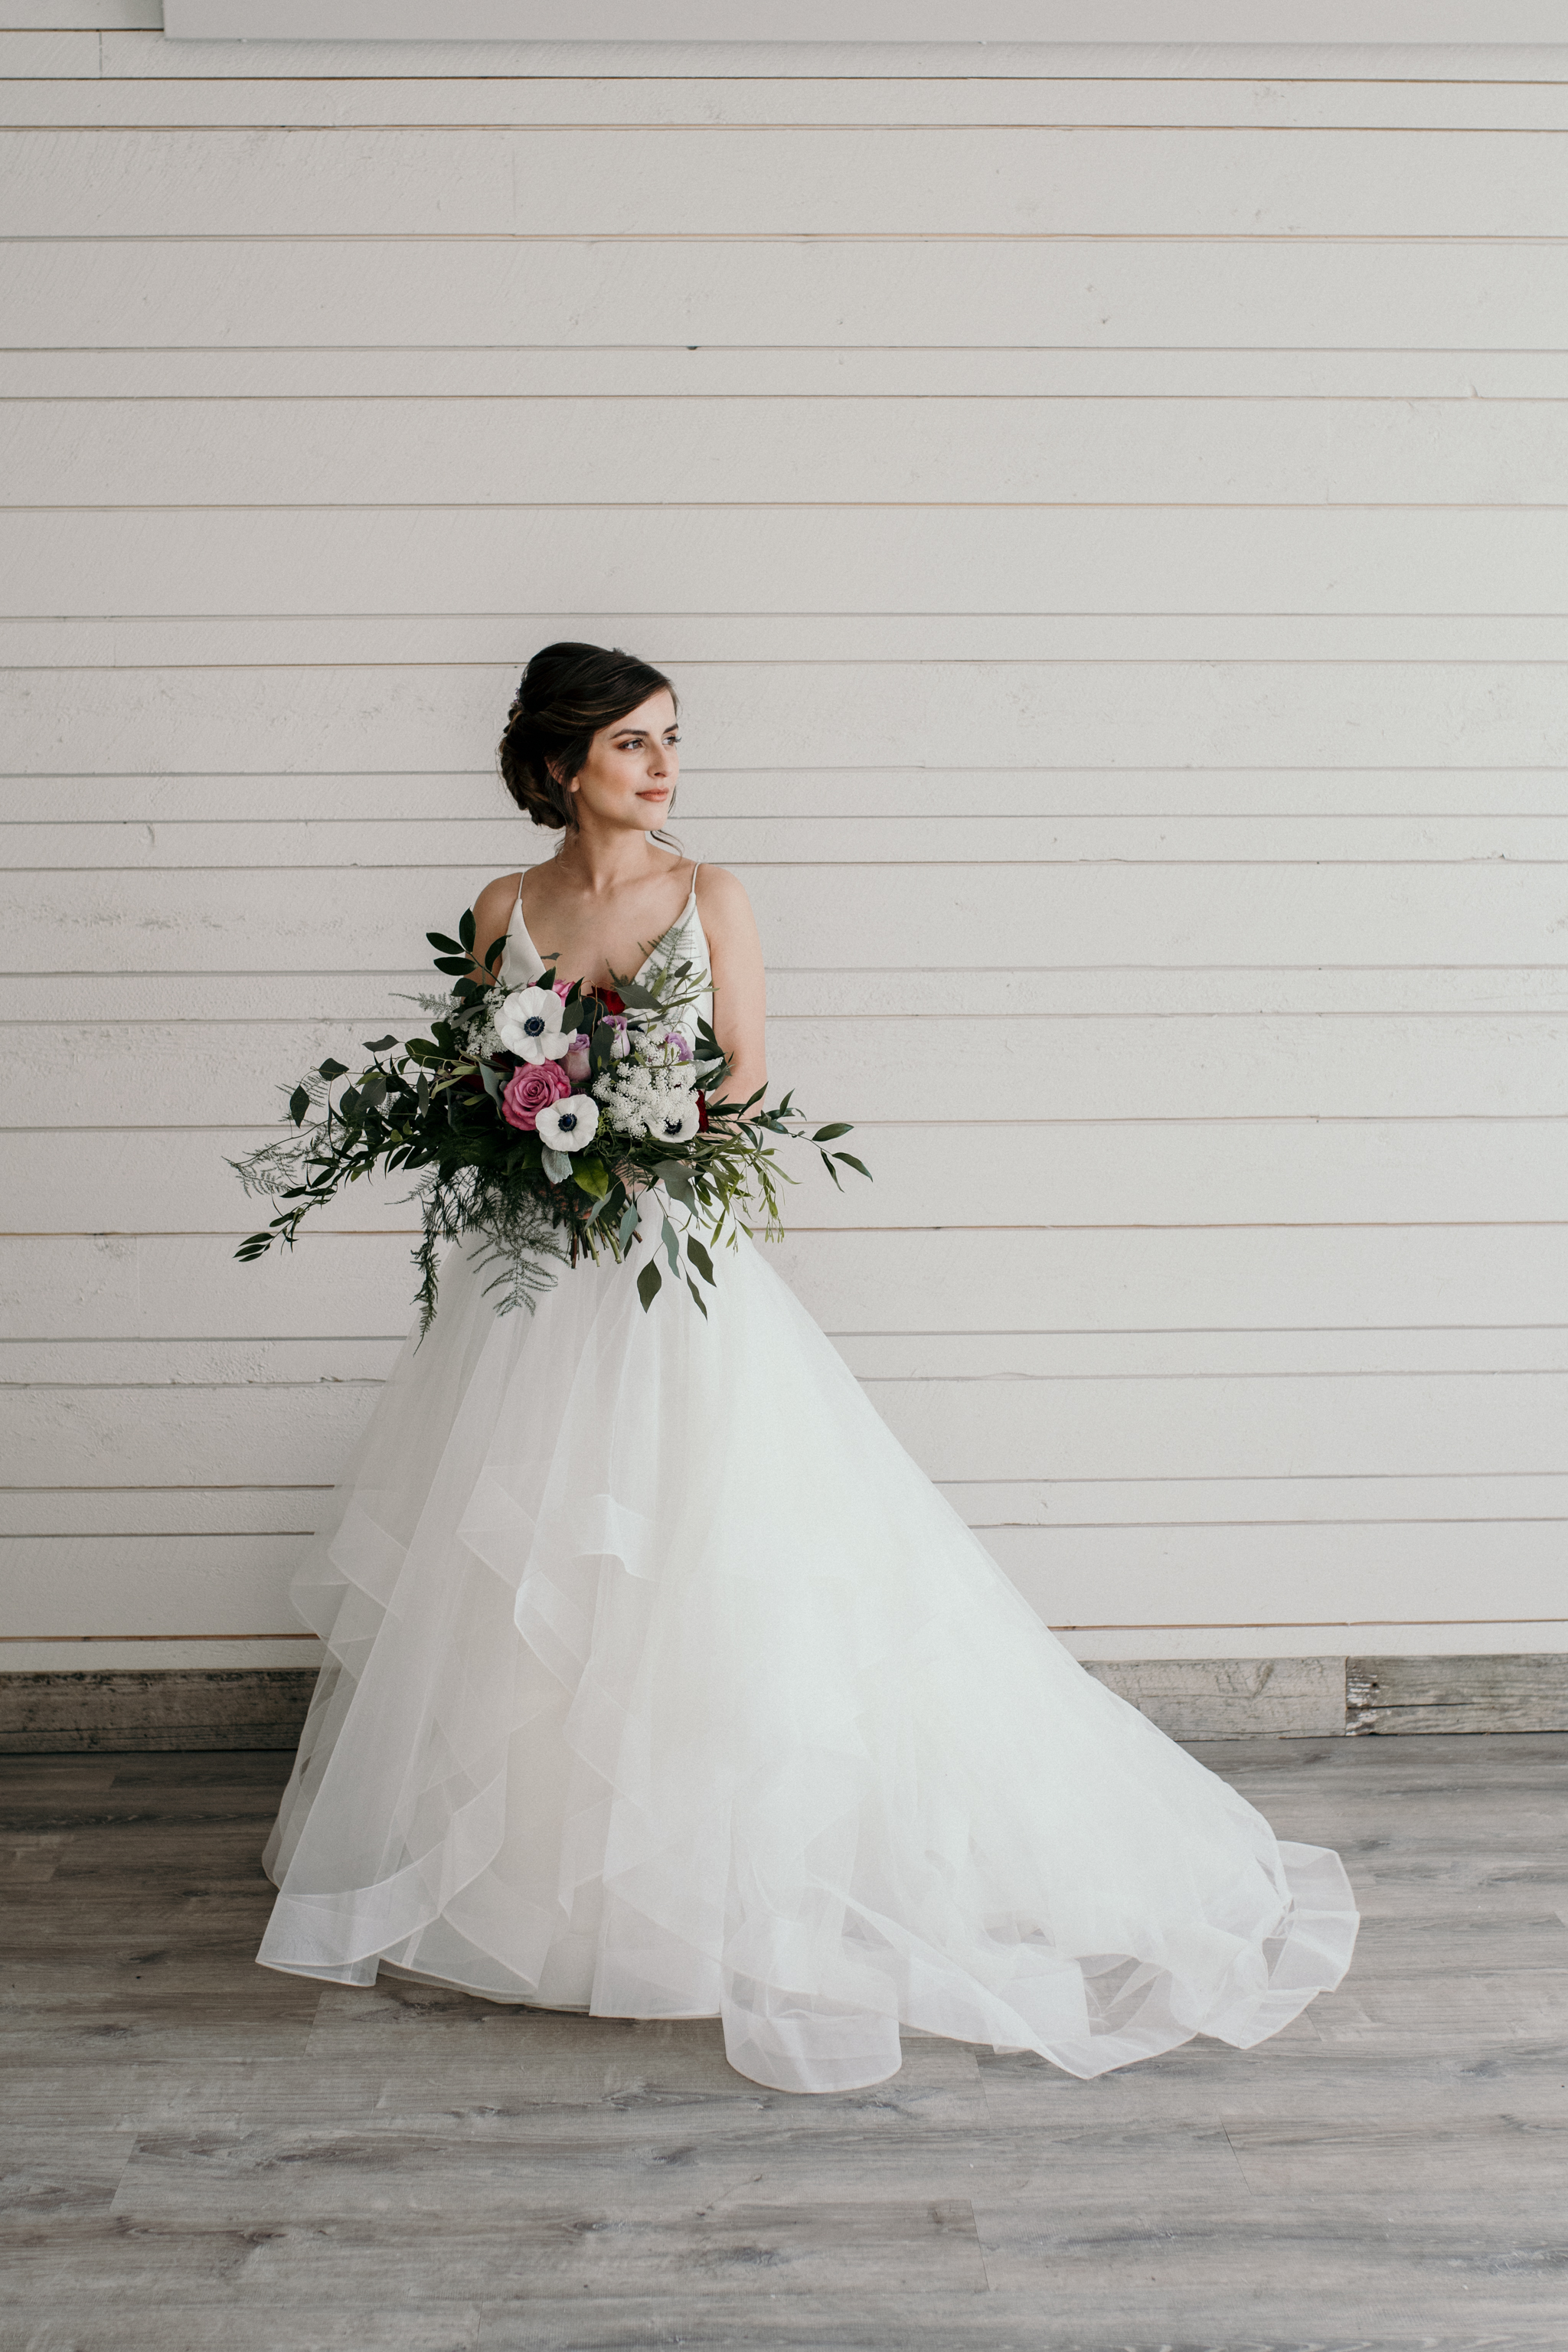 Jewel Tone Wedding Styled Shoot_Silver Knot_Montana Wedding Planner_Montana Wedding Photographer_Montana Wedding Videography_Honeybee Weddings-0644.jpg